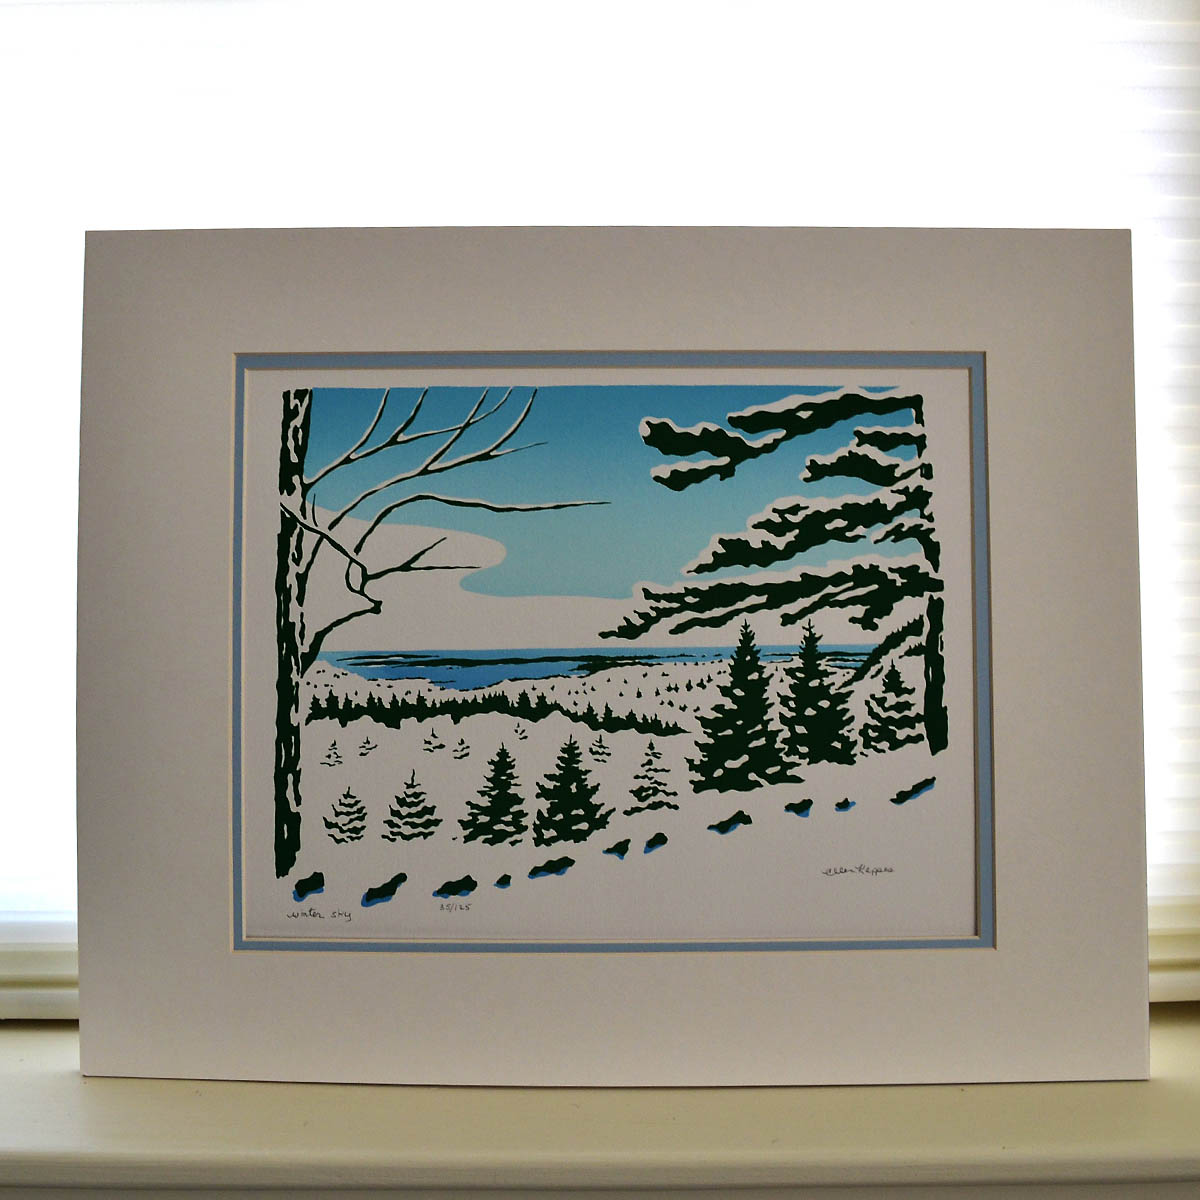 Ellen Kappes Silk-Screen - This matted serigraph is part of a limited edition hand silk-screened by Ellen Kappes. Number 35 of 125, the piece is a playful and cheery depiction of winter on MDI.